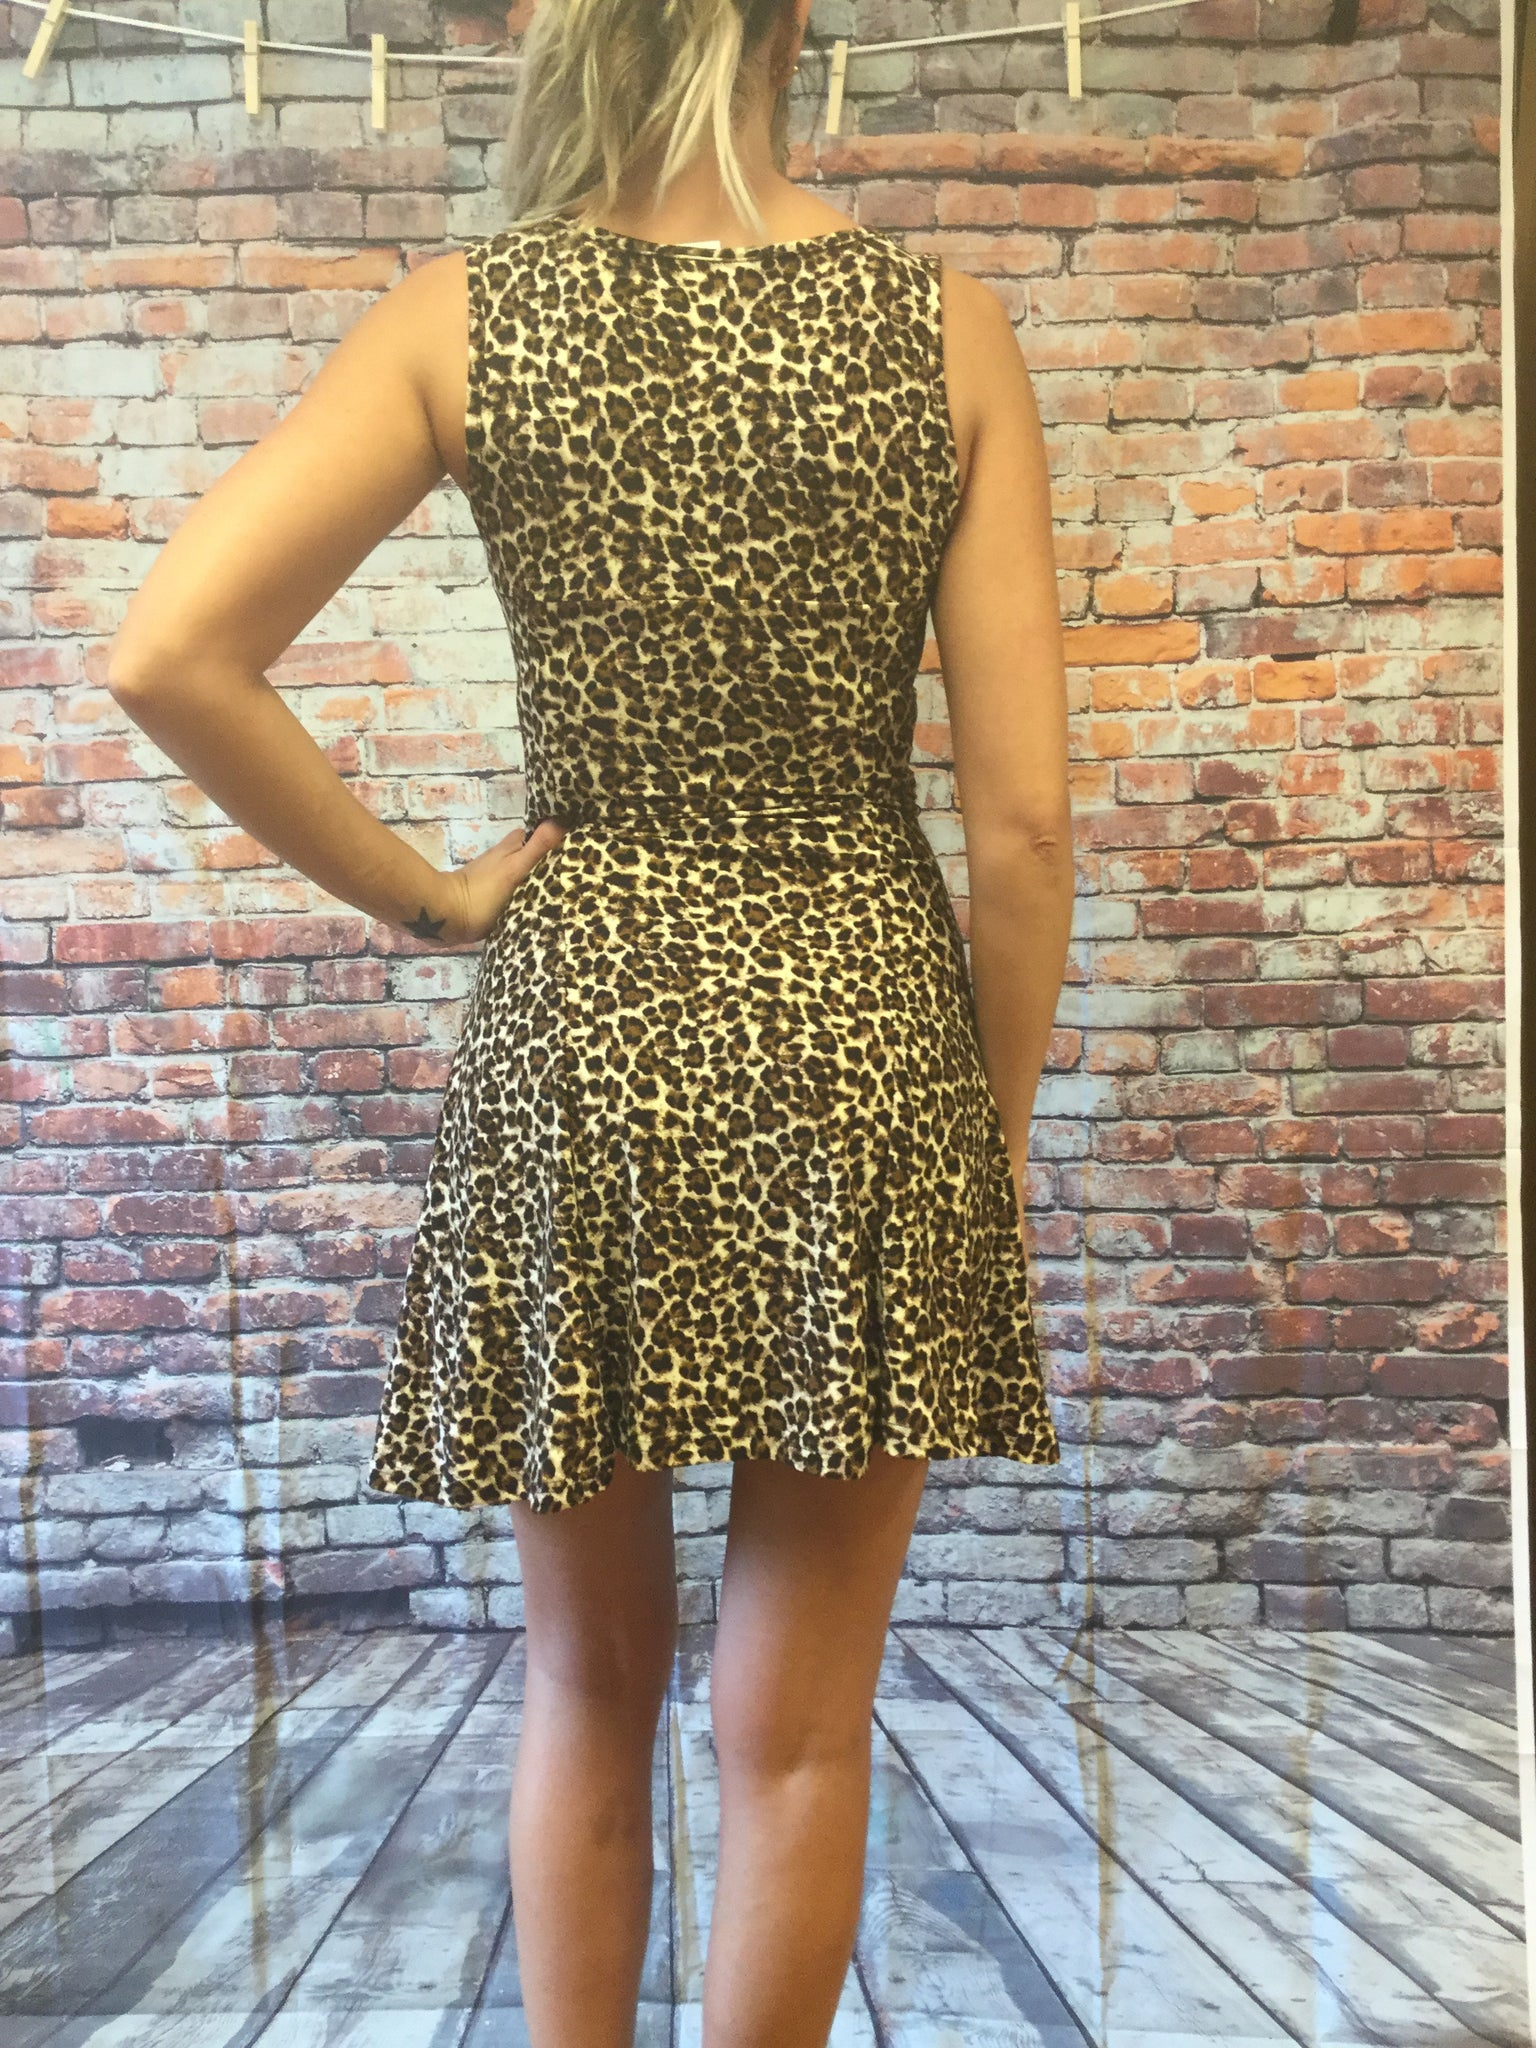 Body Con Leopard Fitted Dresses